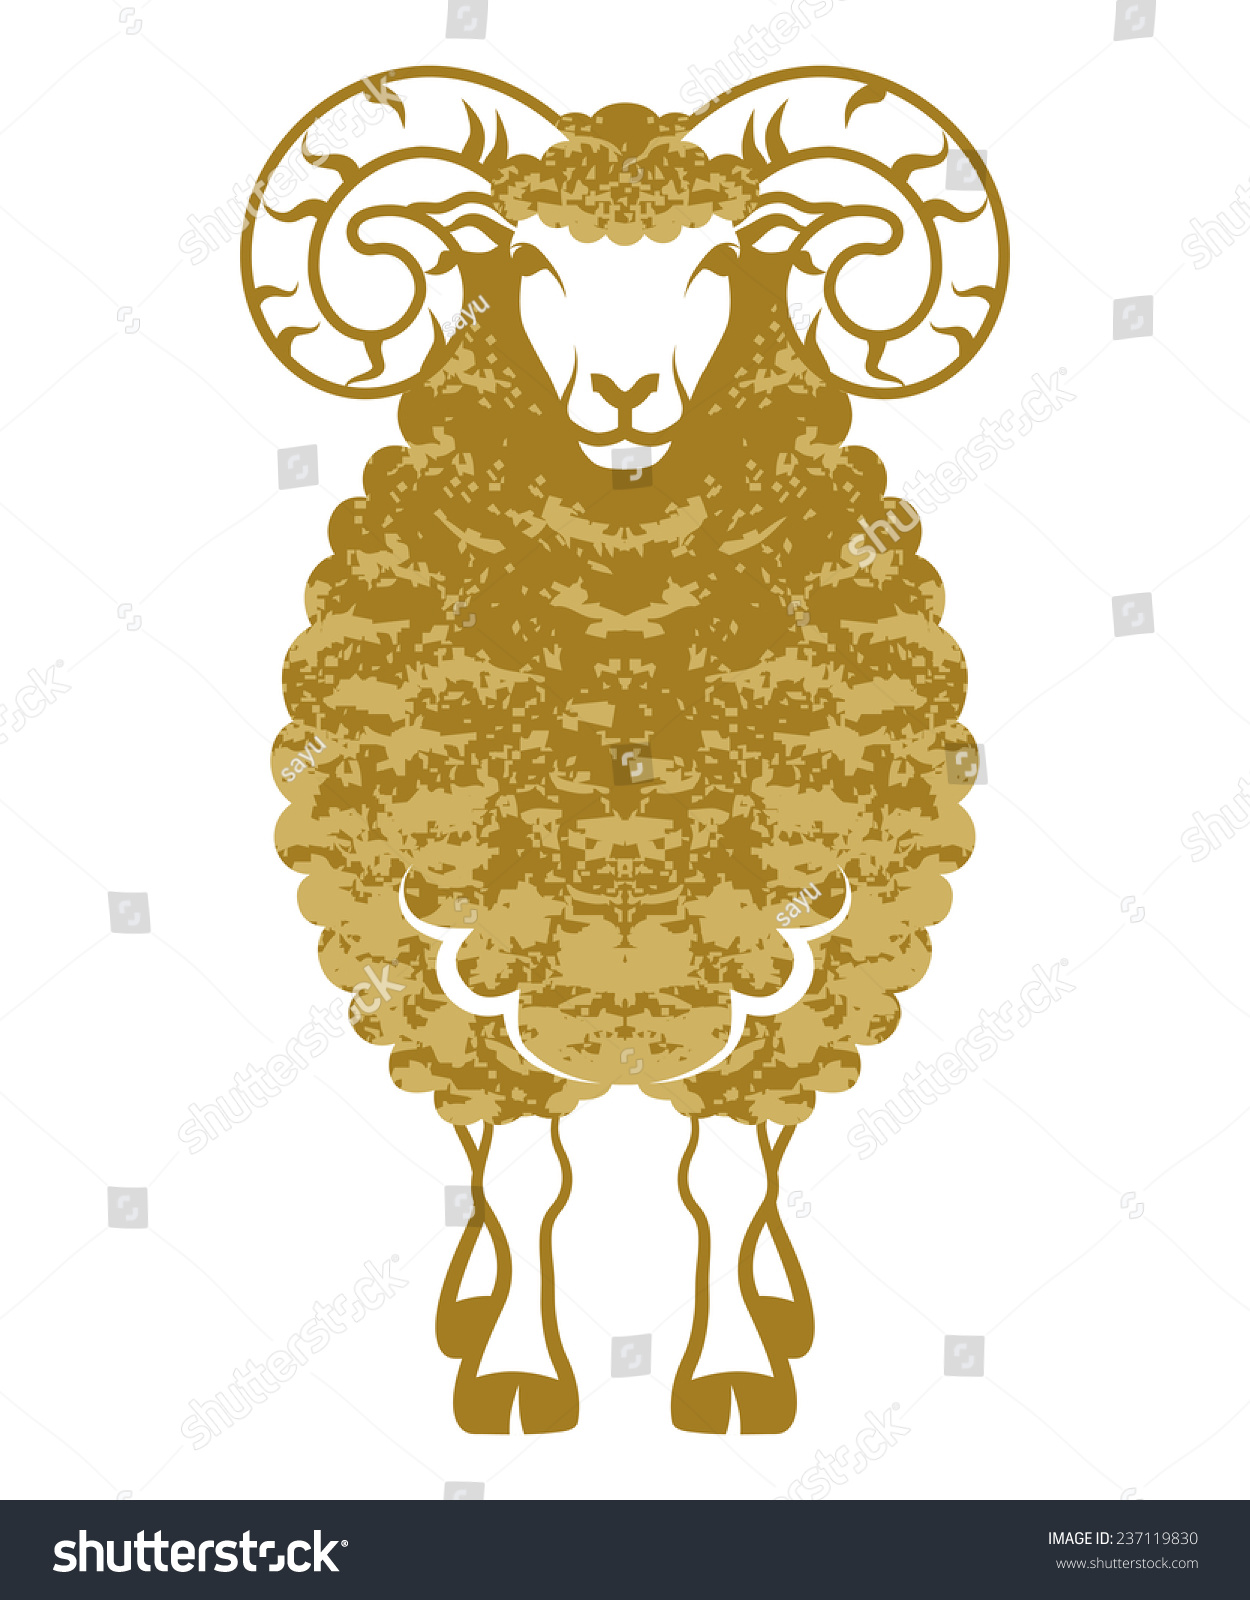 Sheep Front Viewgolden Colorclip Art Stock Vector